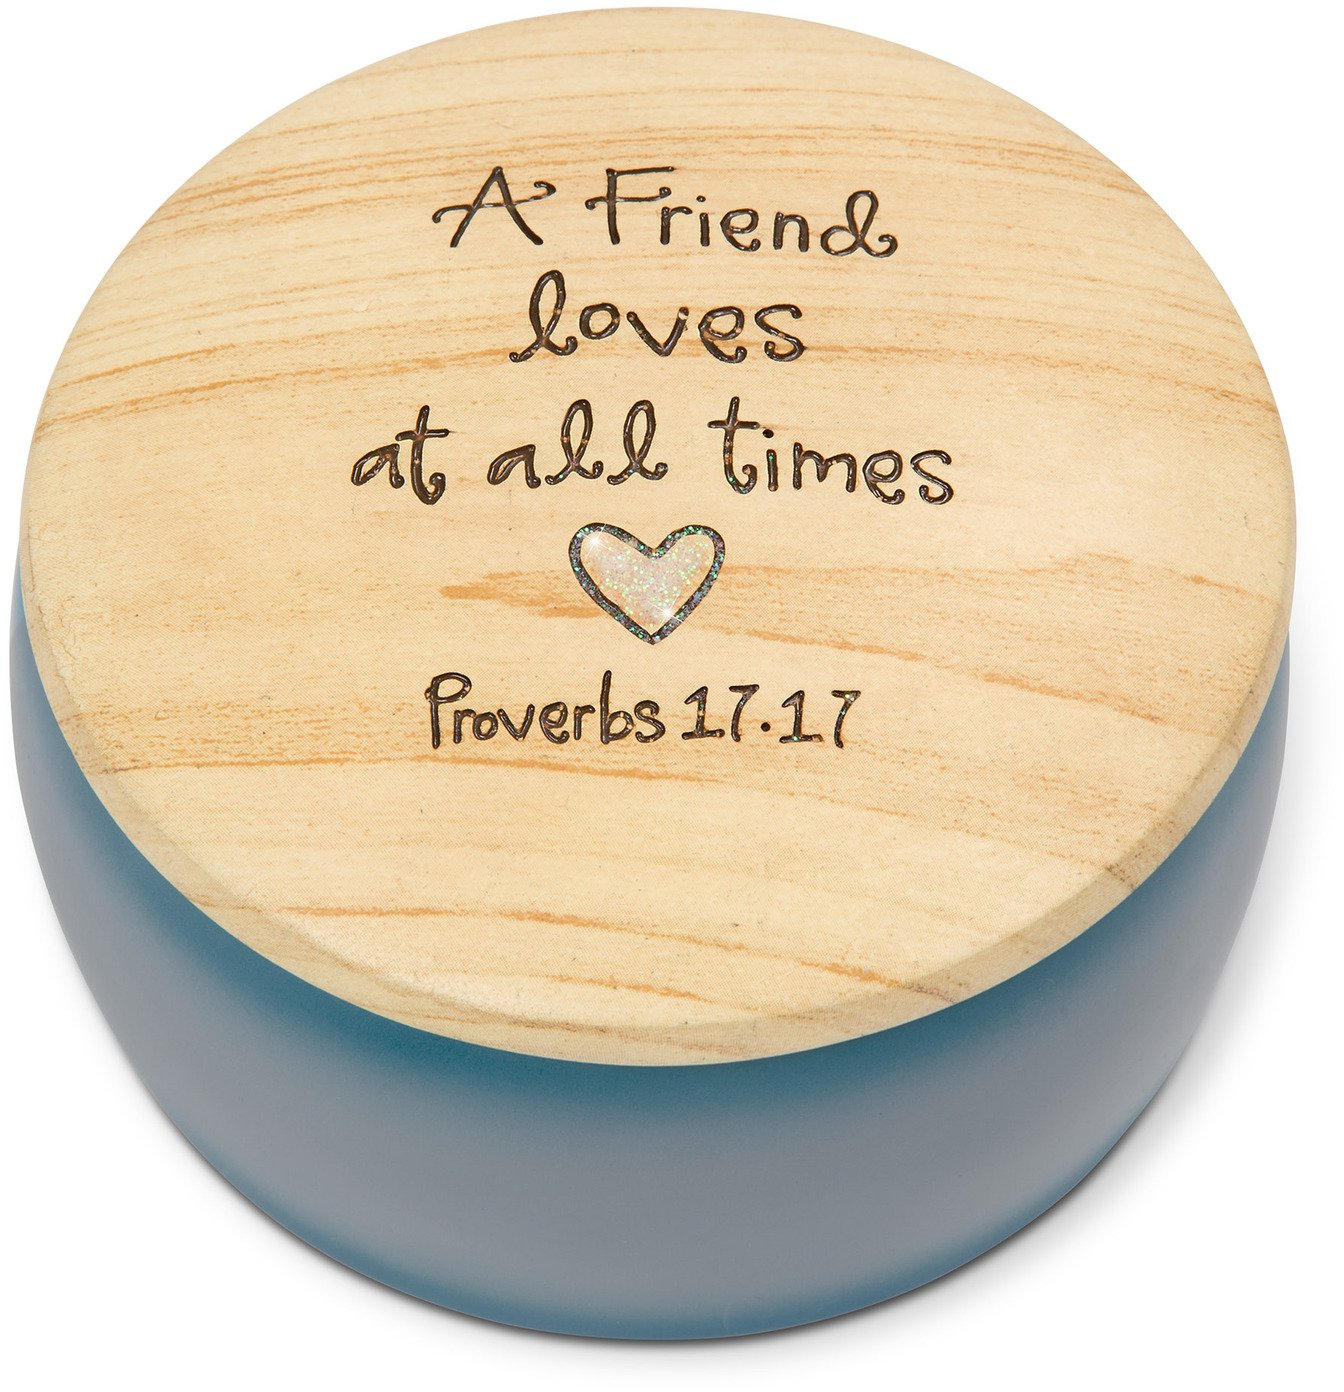 Pavilion Gift Company Heavenly Woods - A Friend Loves at All times Proverbs 17-17 Round Purple Butterfly Keepsake Jewelry Box